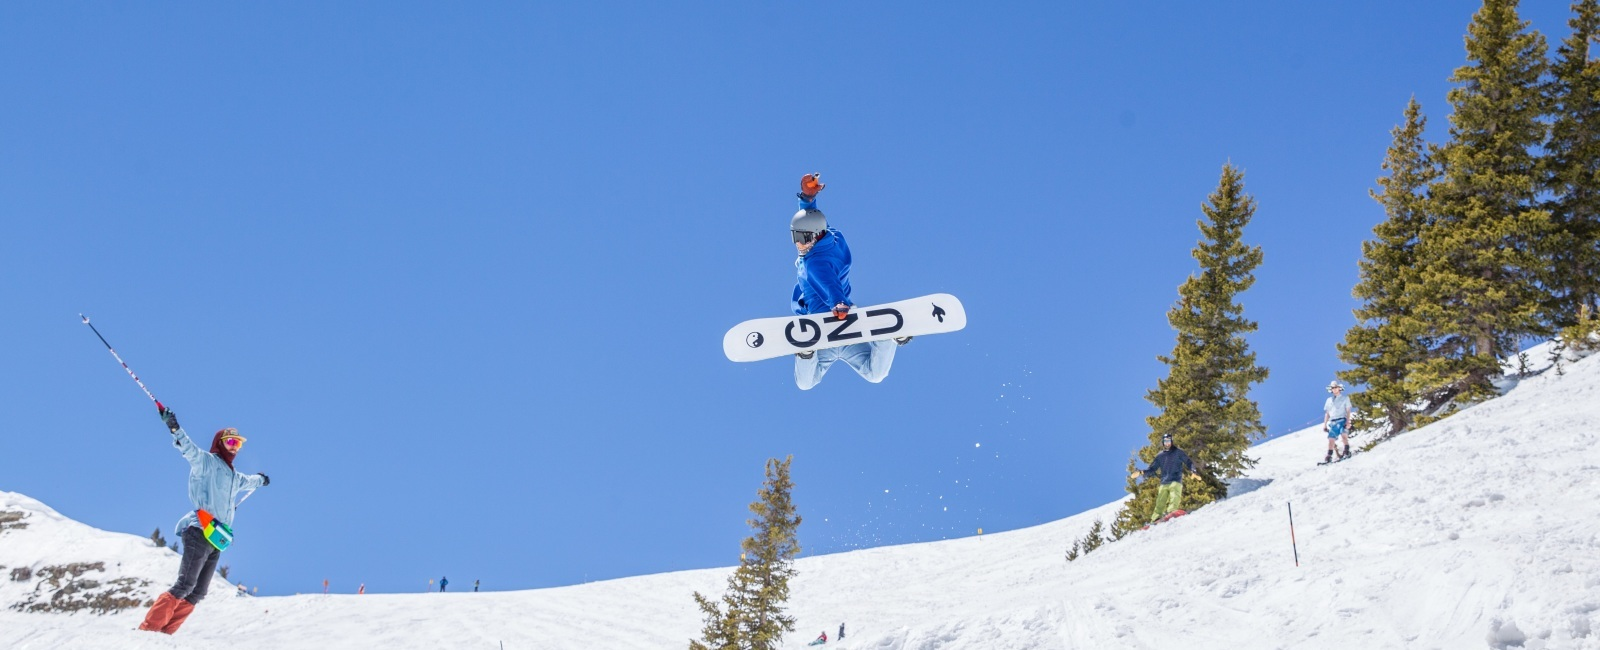 Skier Humbly Gives Snowboarding a Try